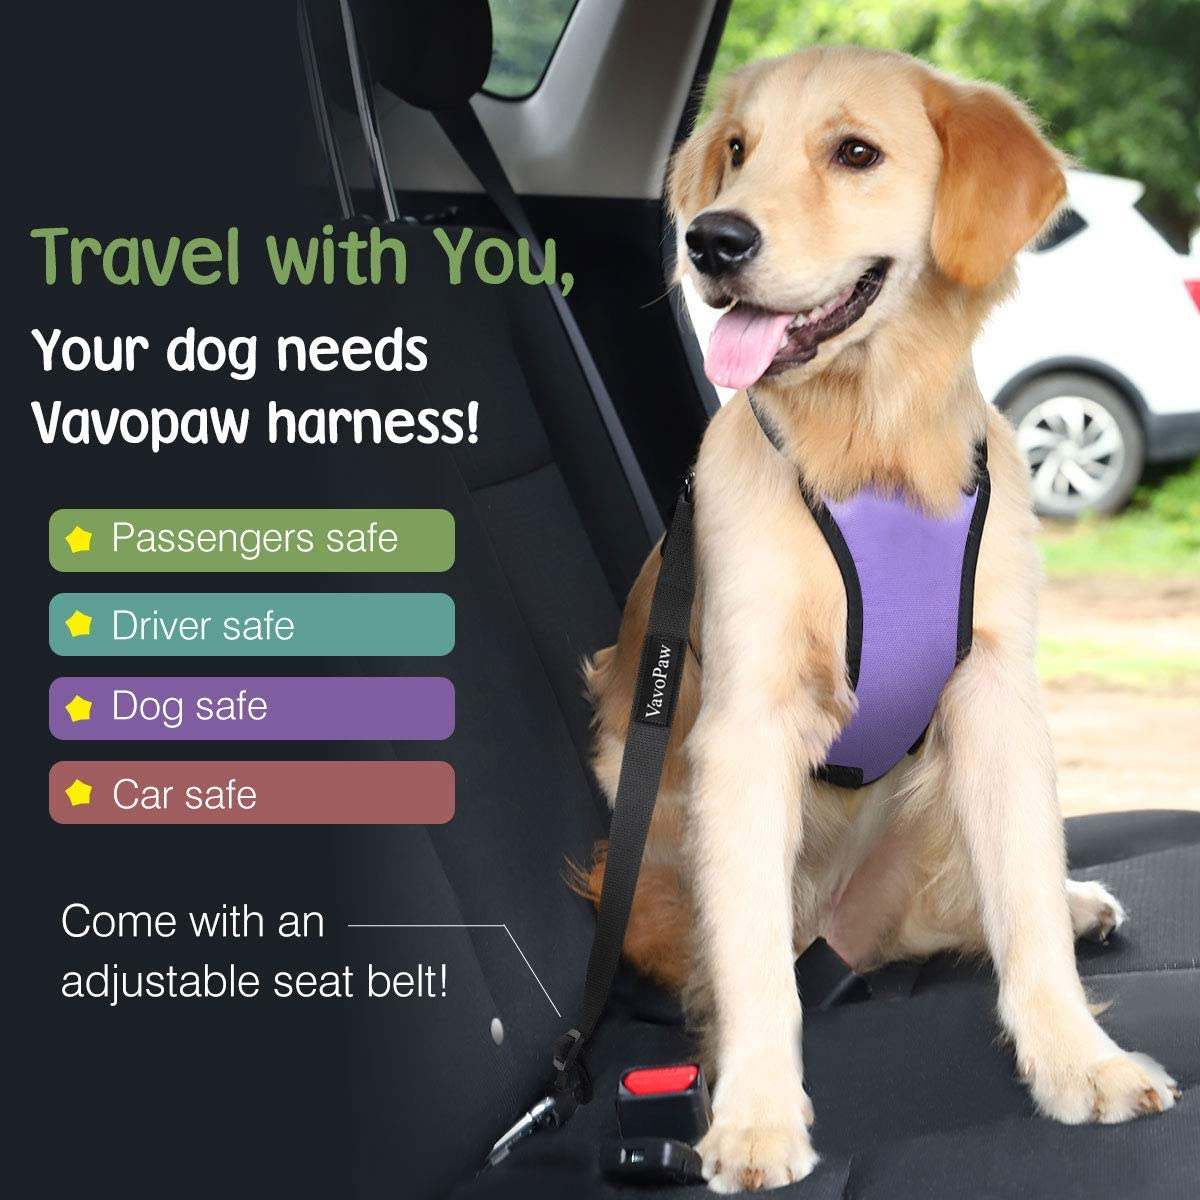 Marble Purple VavoPaw Dog Vehicle Safety Vest Harness Size Extra Large Adjustable Soft Padded Mesh Car Seat Belt Leash Harness with Travel Strap and Locking Carabiner for Most Cars